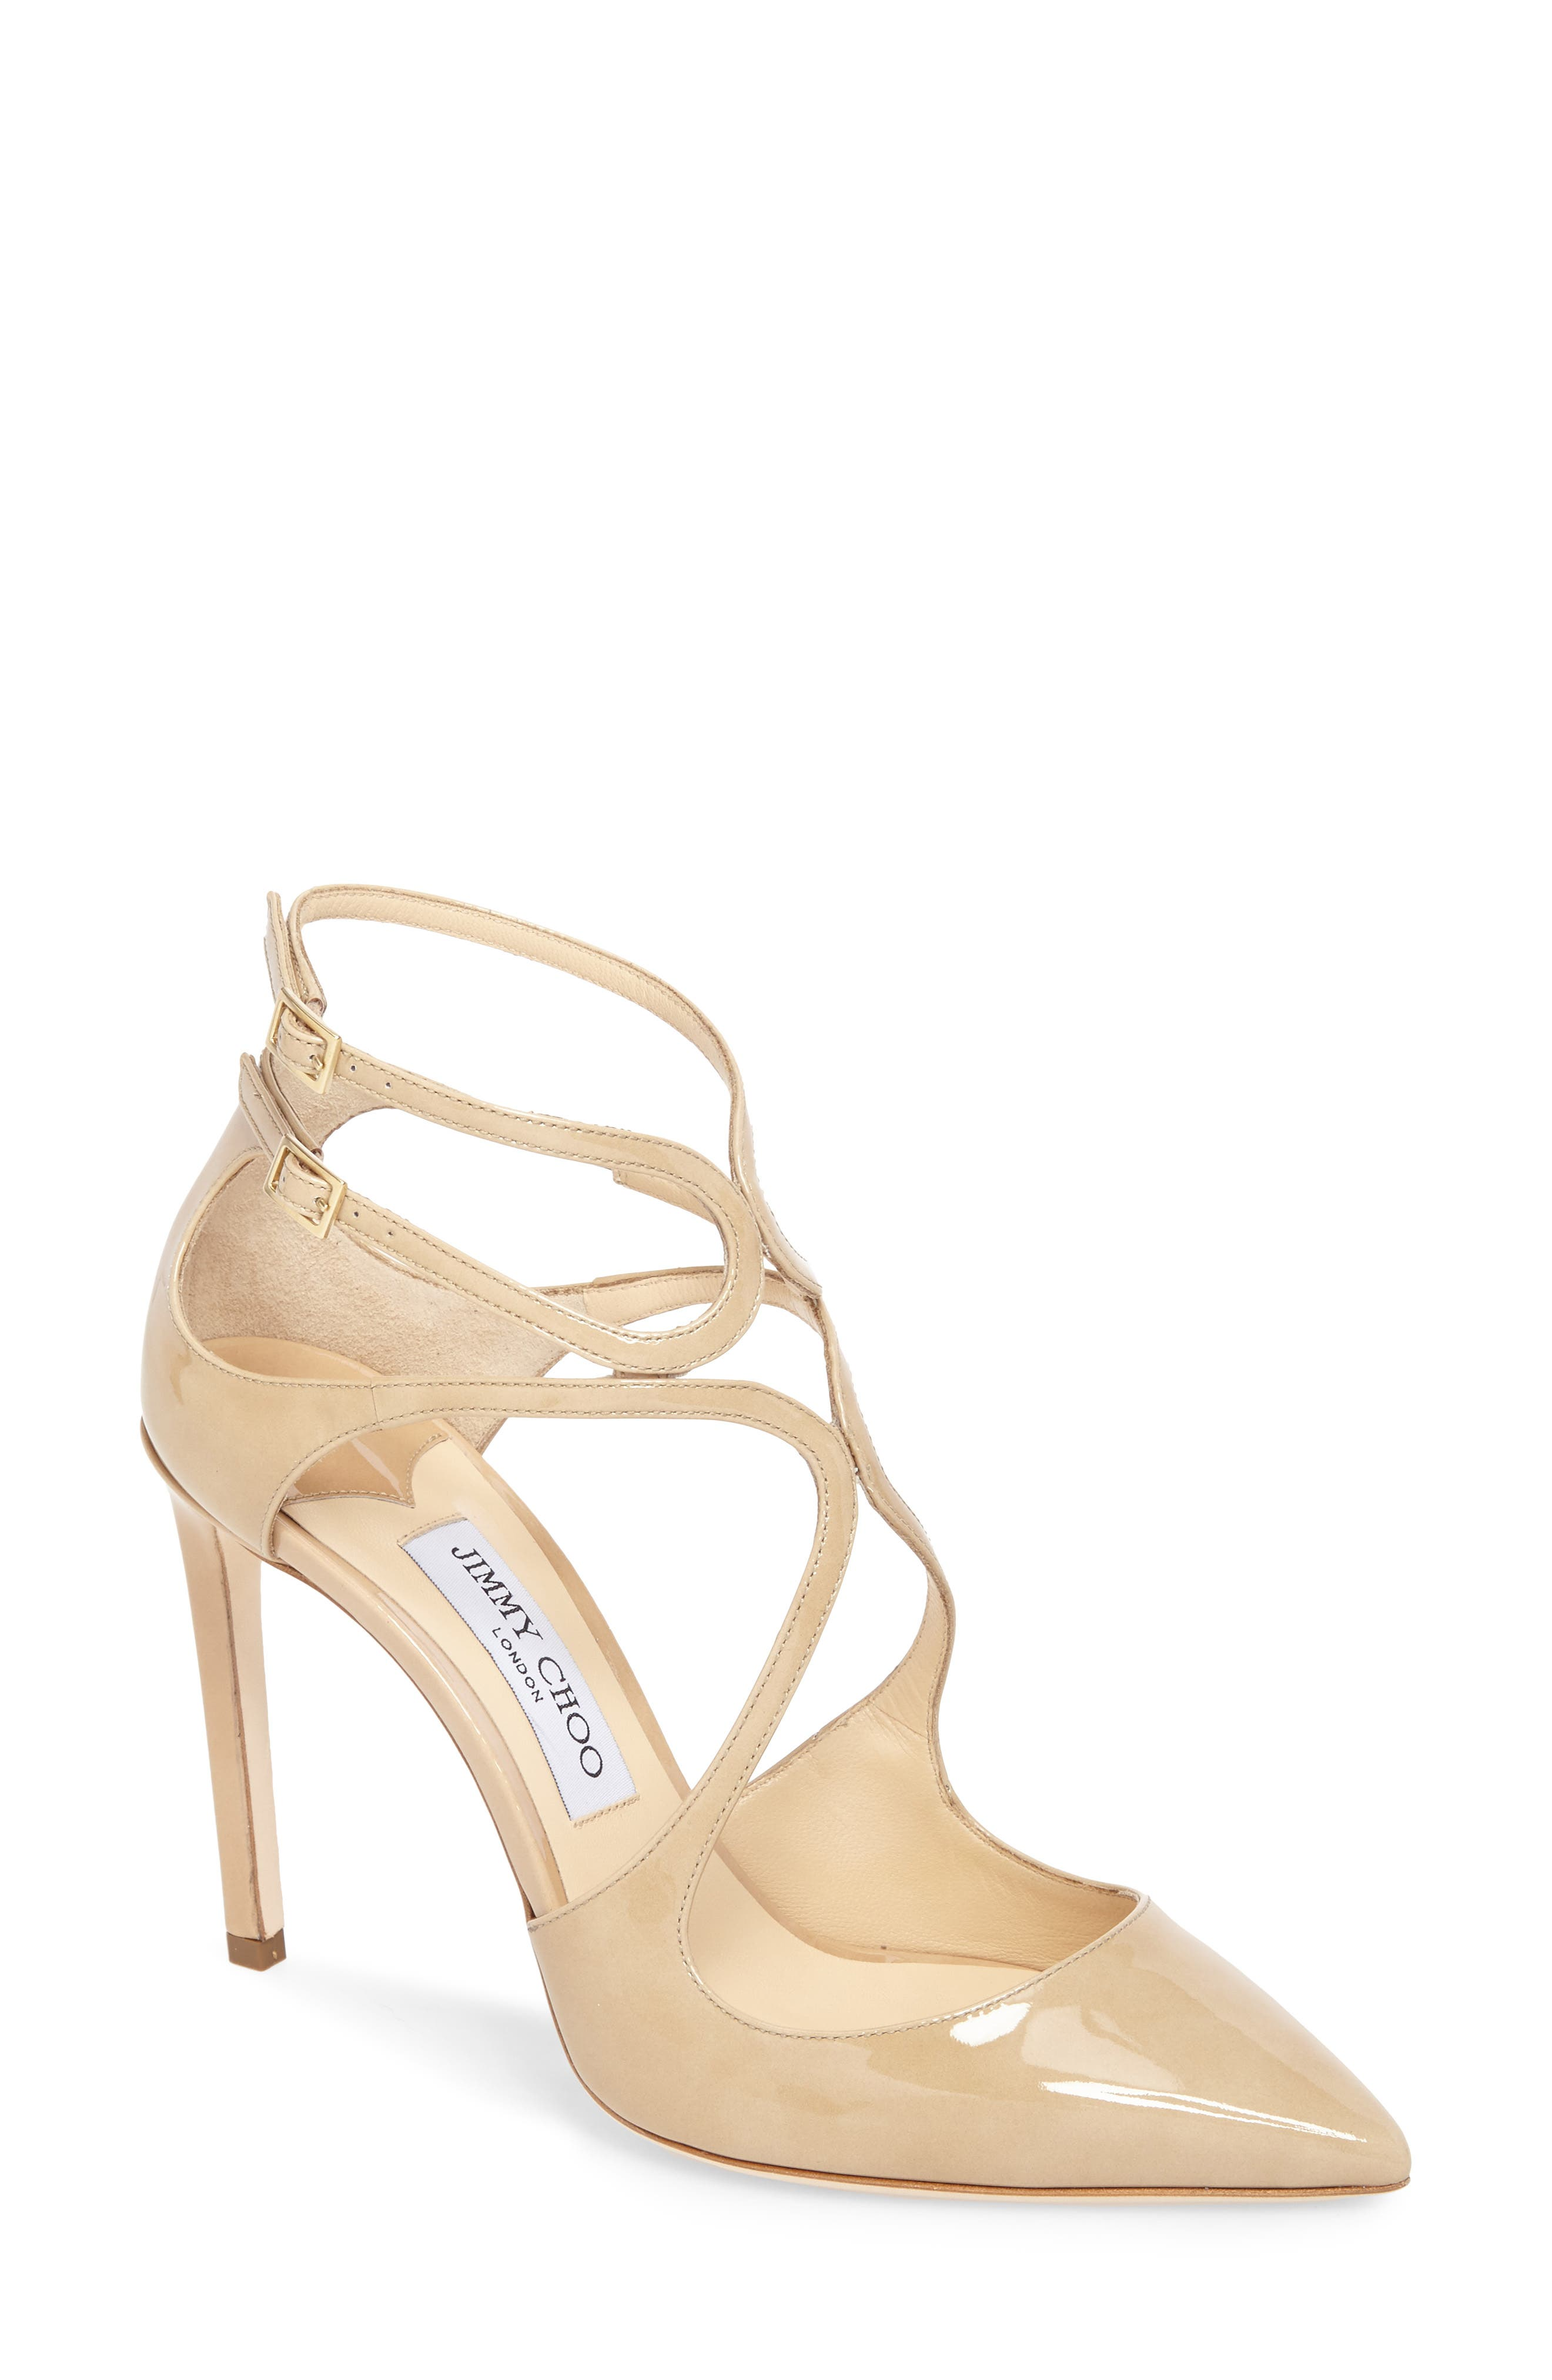 Lancer Strappy Pump,                             Main thumbnail 1, color,                             NUDE PATENT